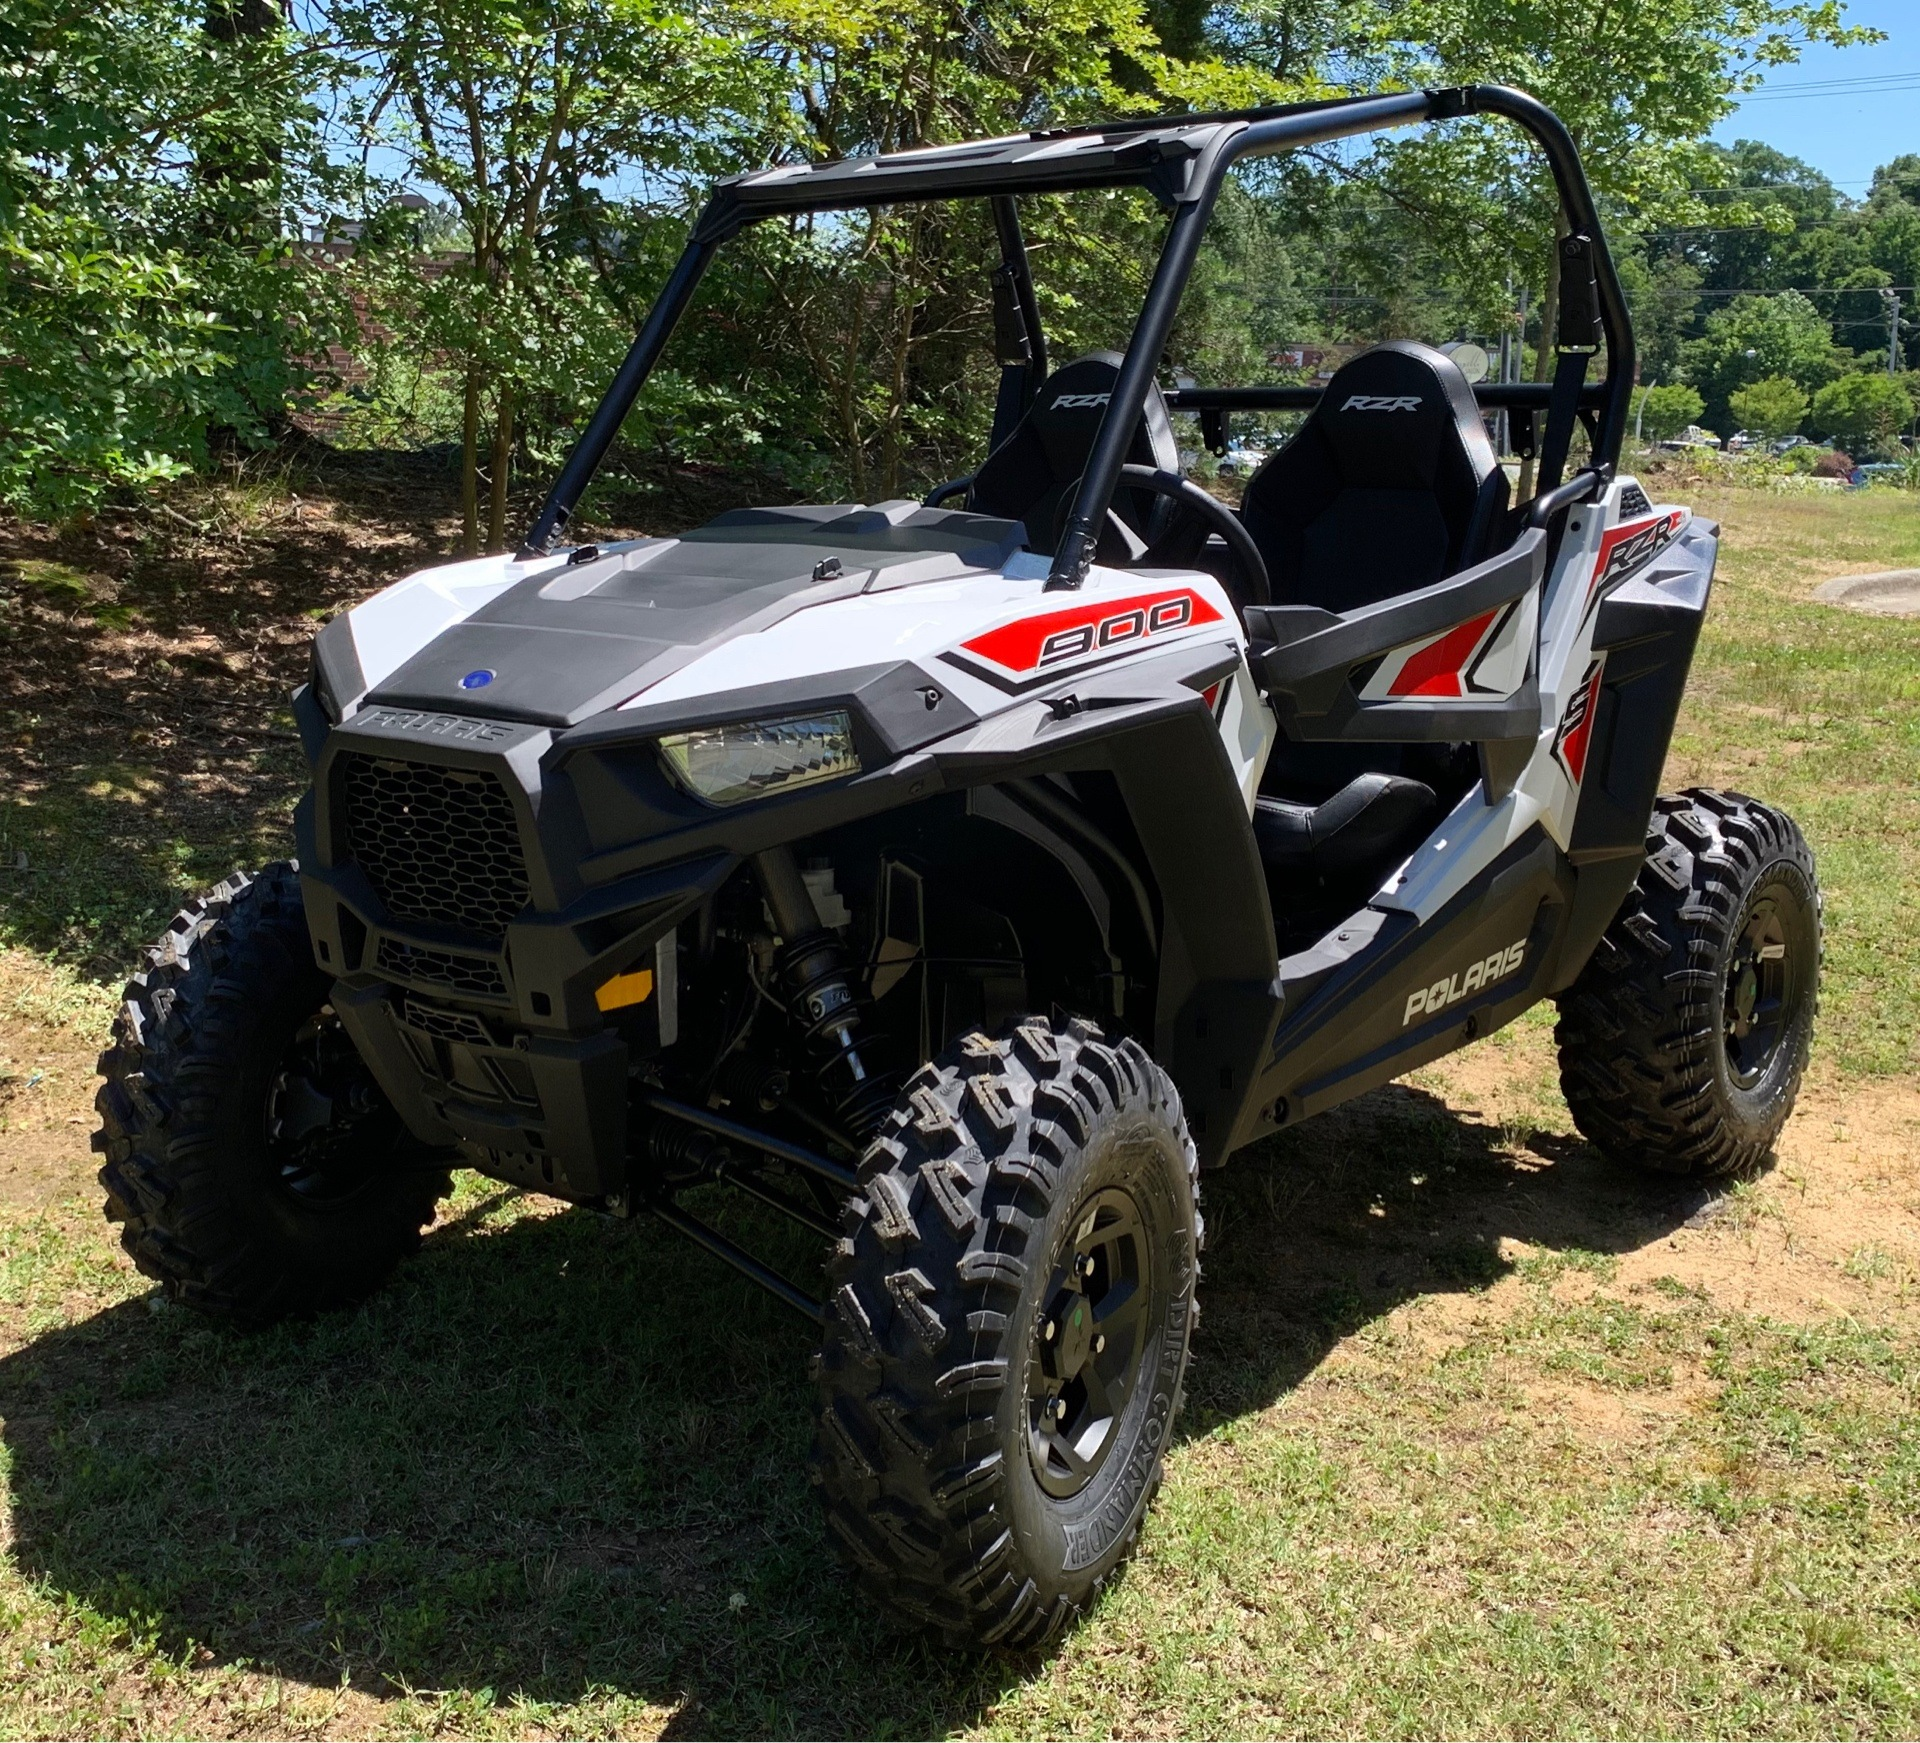 2019 Polaris RZR S 900 in High Point, North Carolina - Photo 1